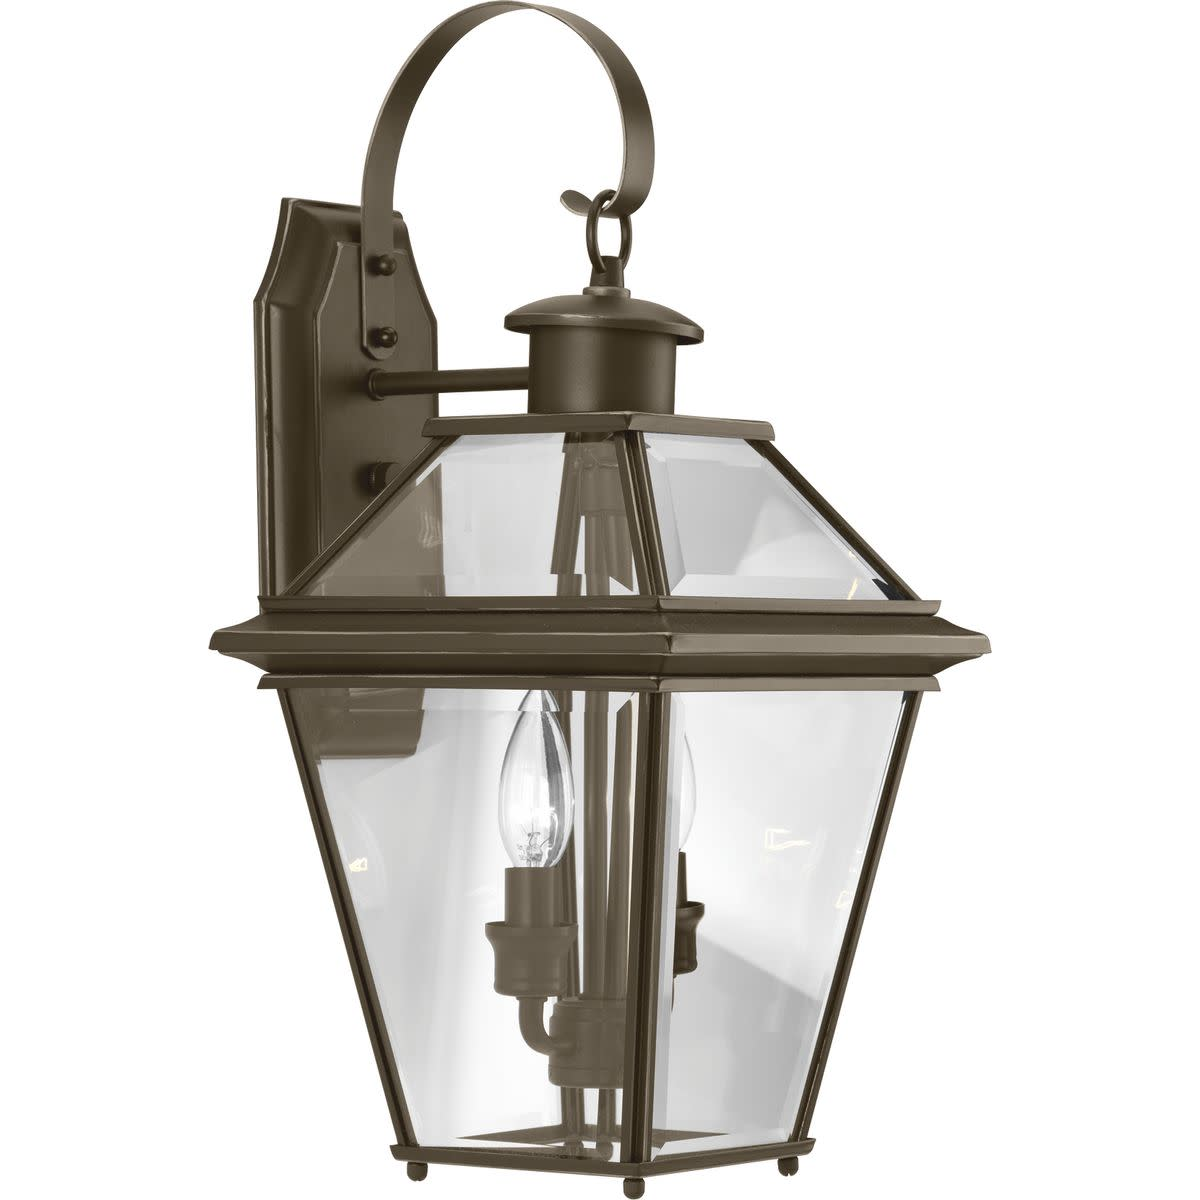 Burlington Collection Two-Light Medium Wall Lantern